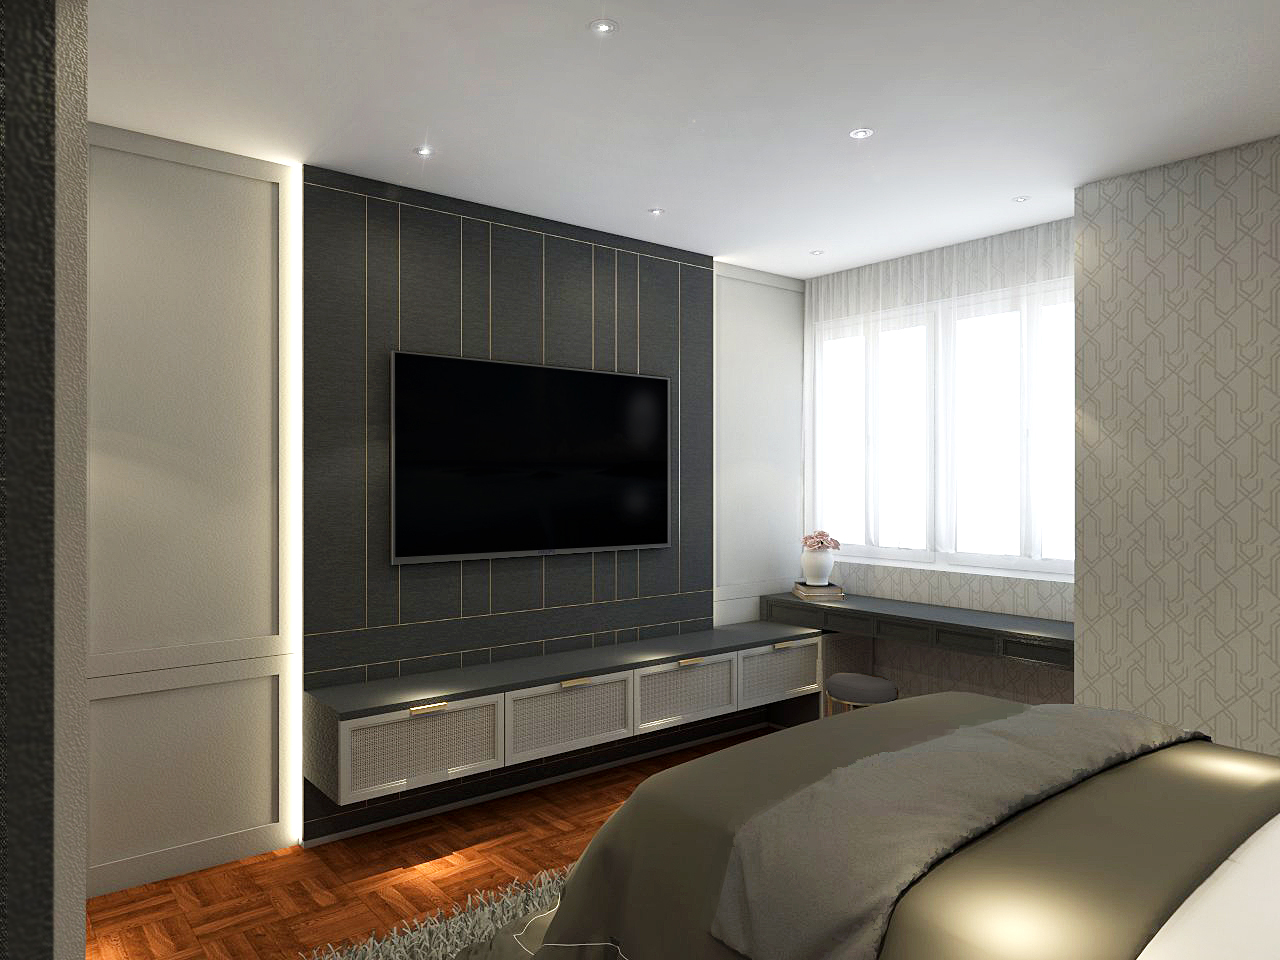 Master Bedroom Design and Renovation